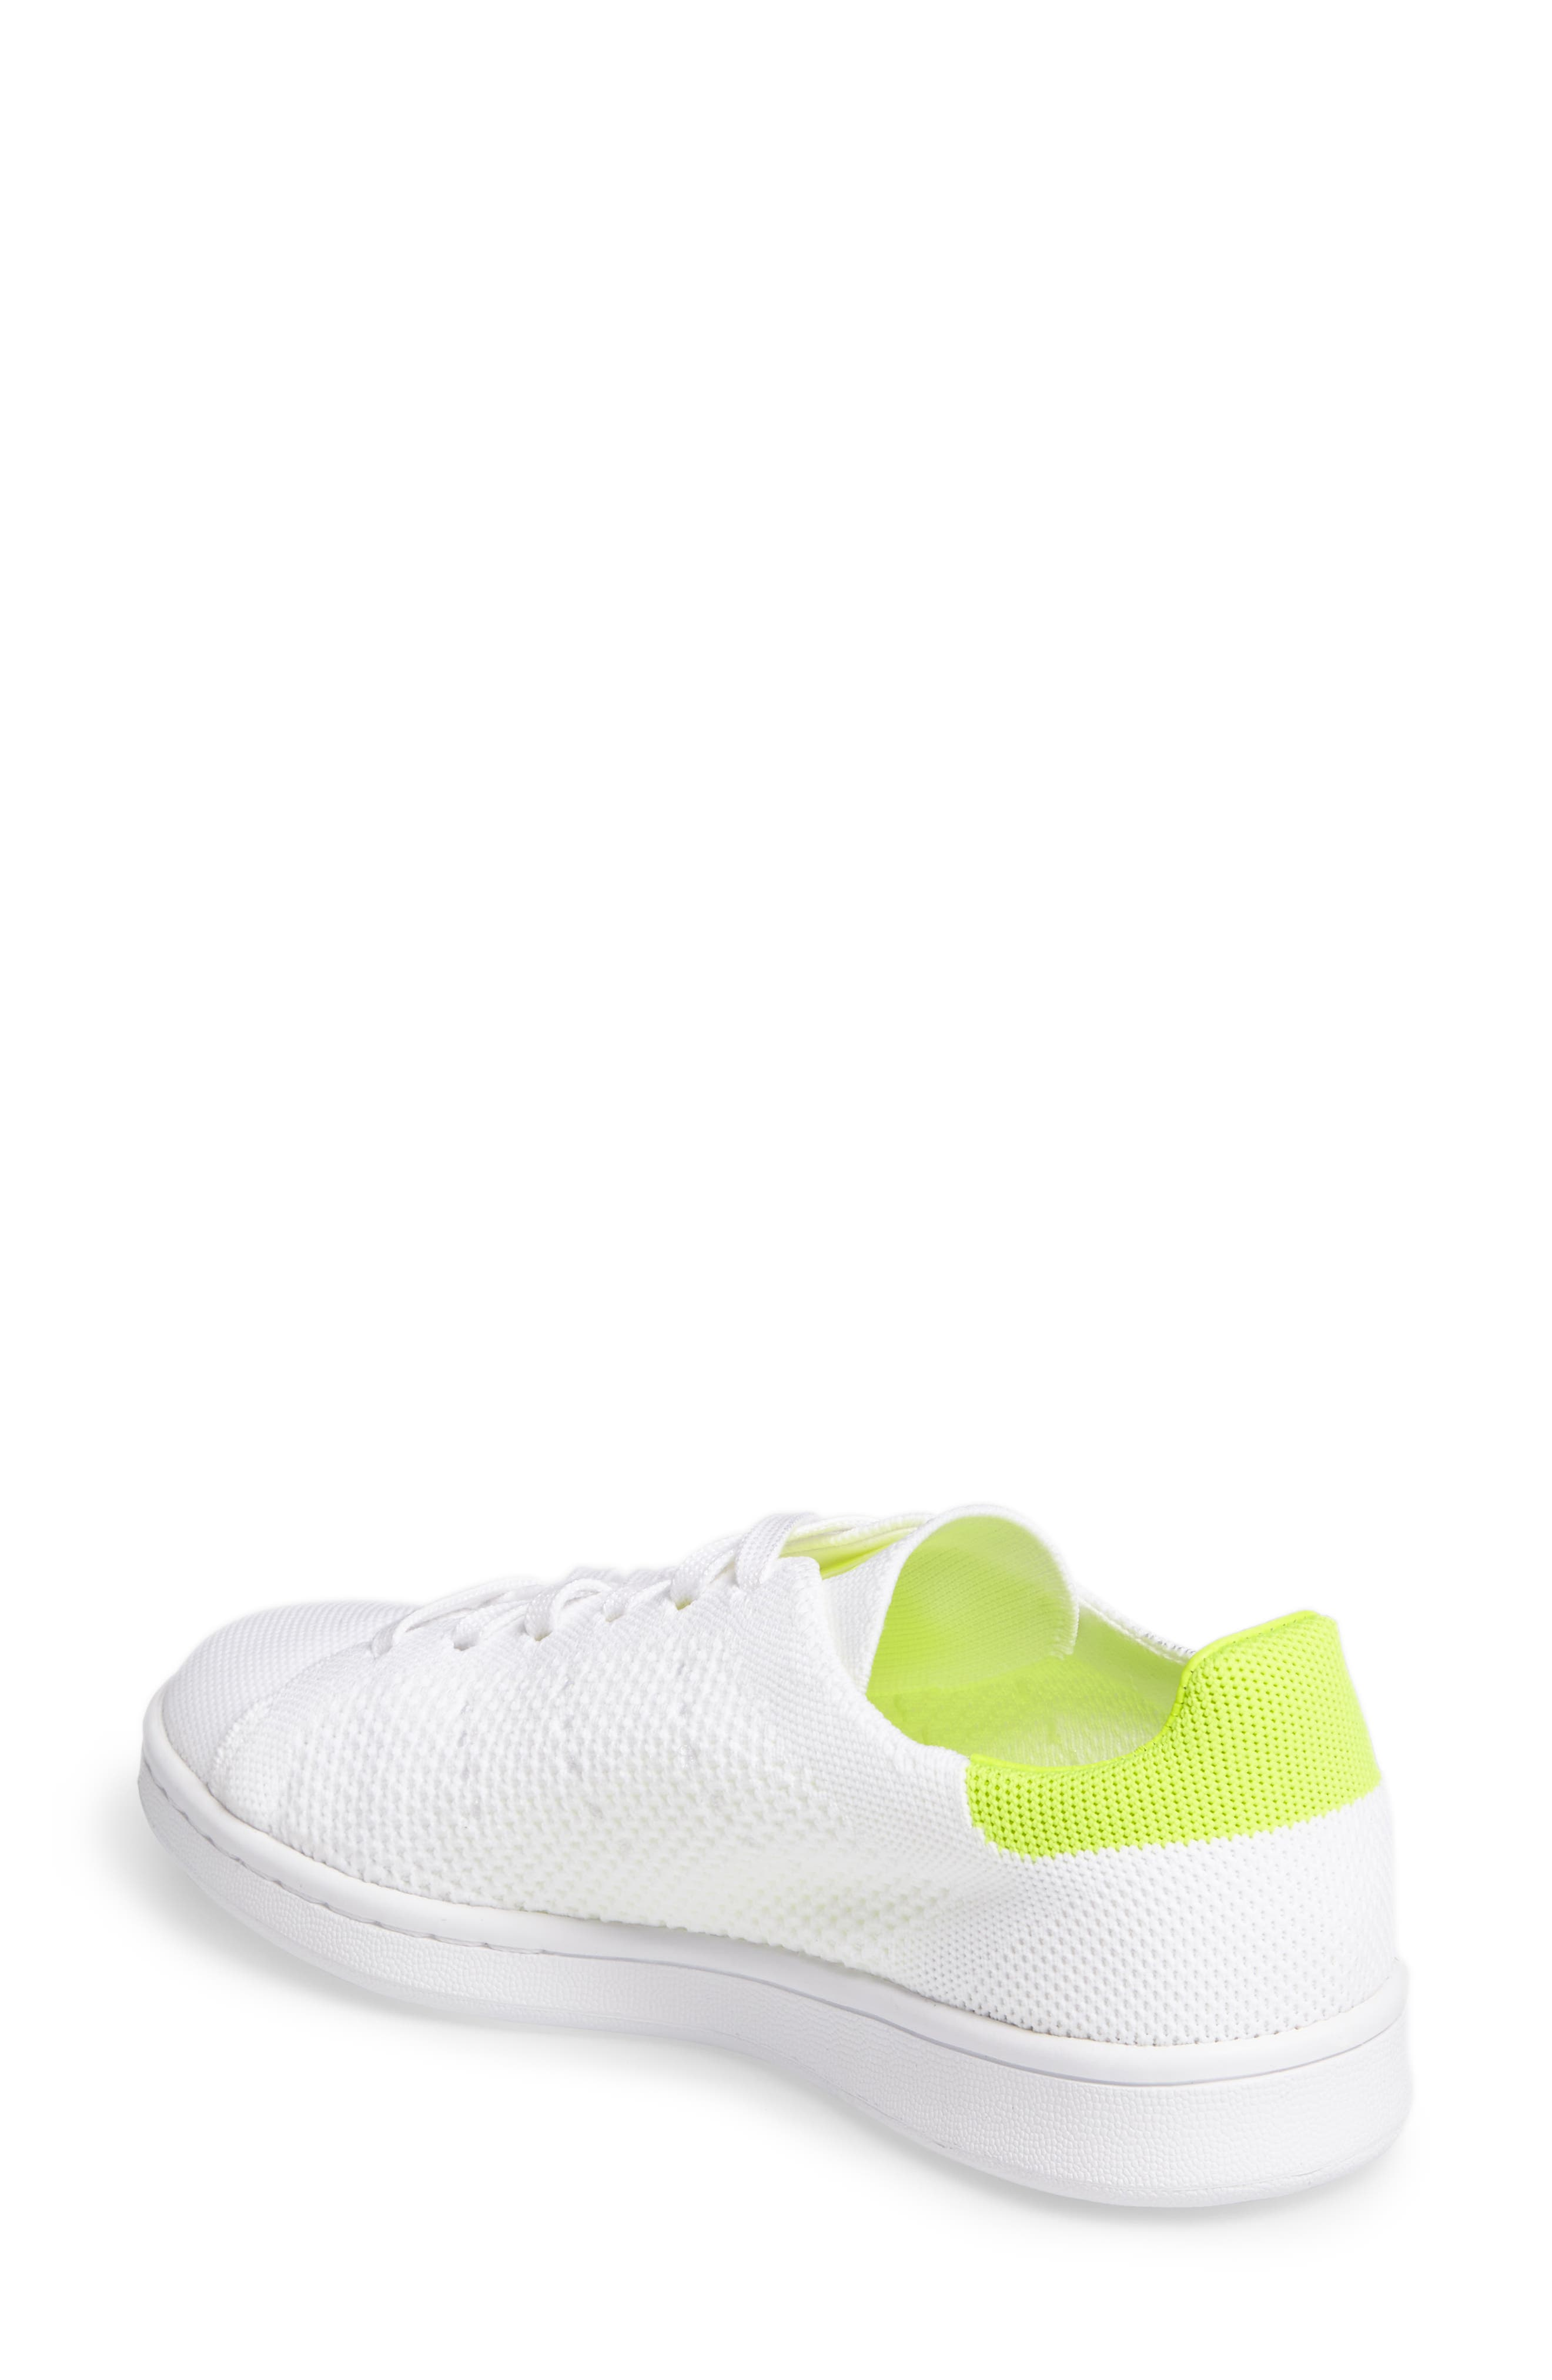 Alternate Image 2  - adidas Stan Smith - Primeknit Sneaker (Women)